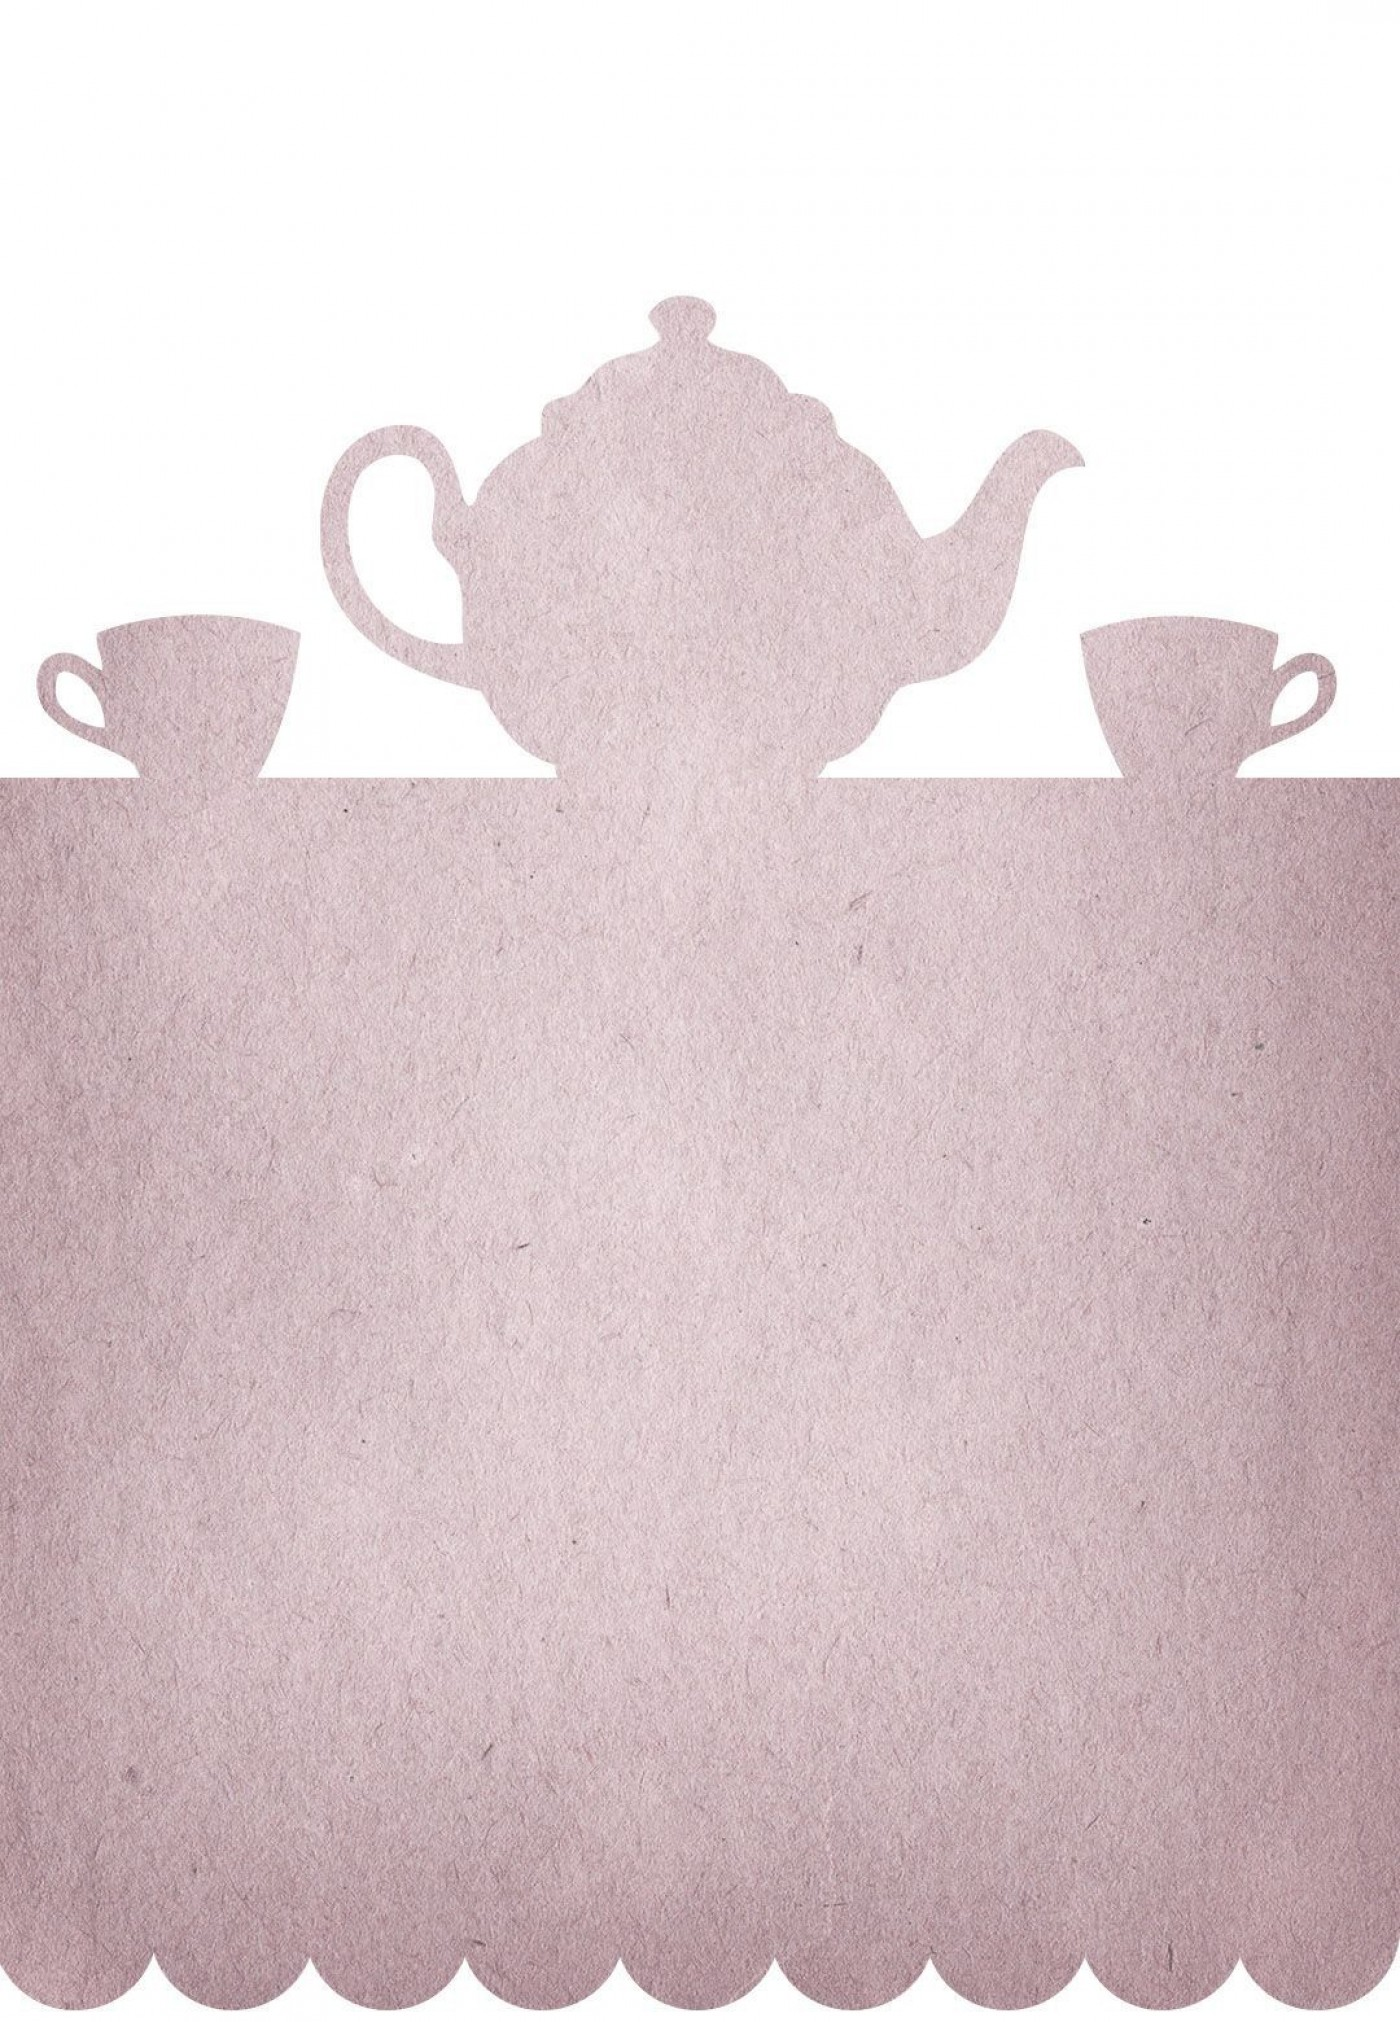 005 Singular Tea Party Invitation Template Free Example  Vintage Princes Printable1400